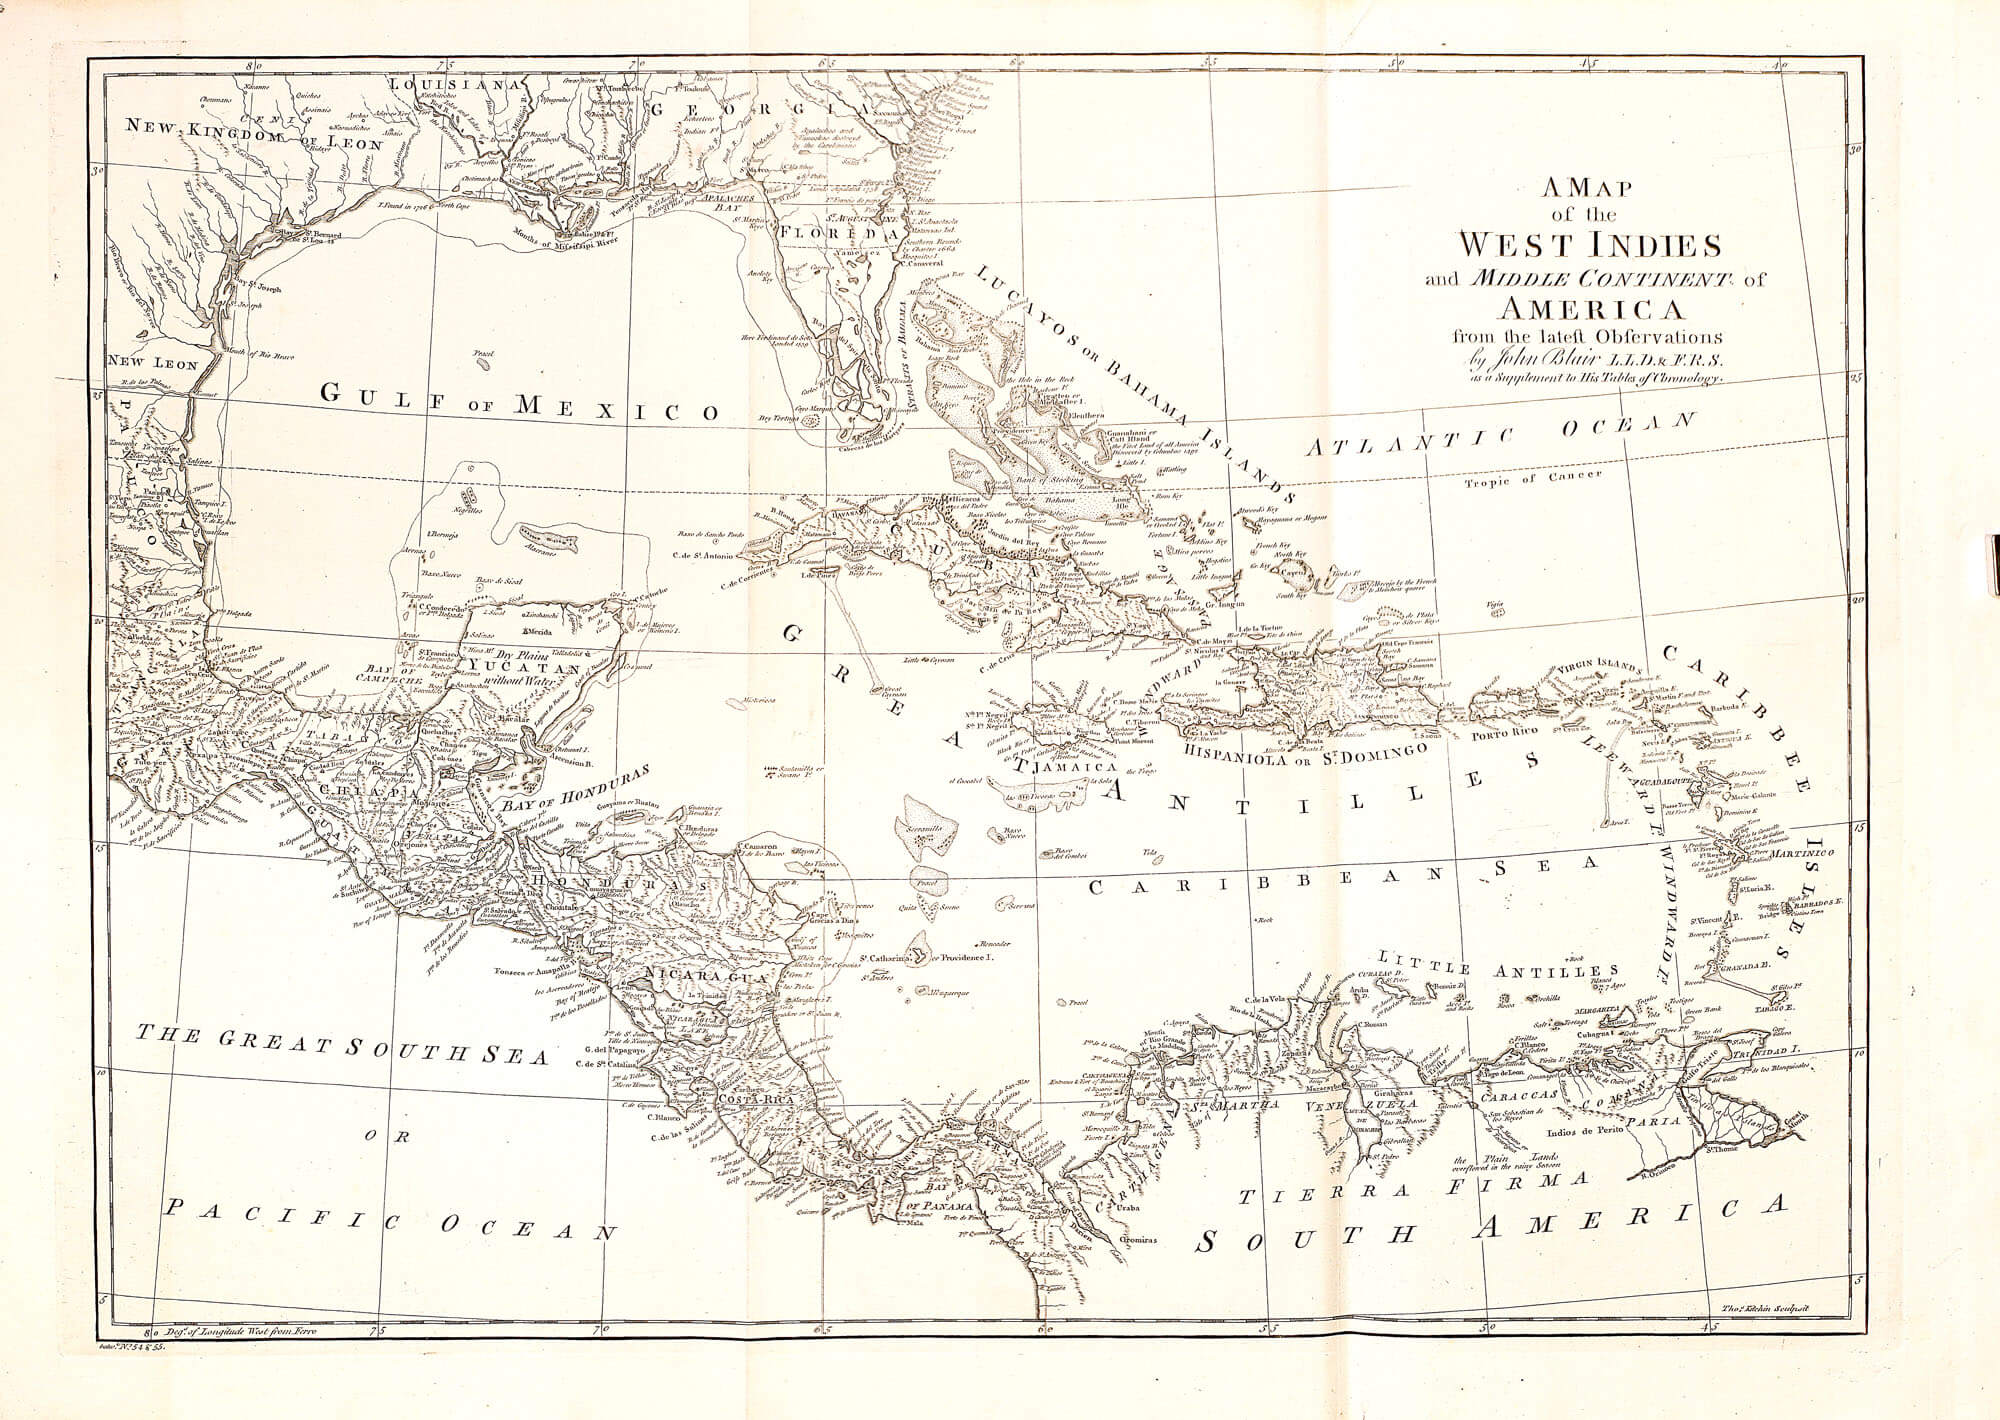 World Atlas John Blair L Brown Collection - West indies central america 1763